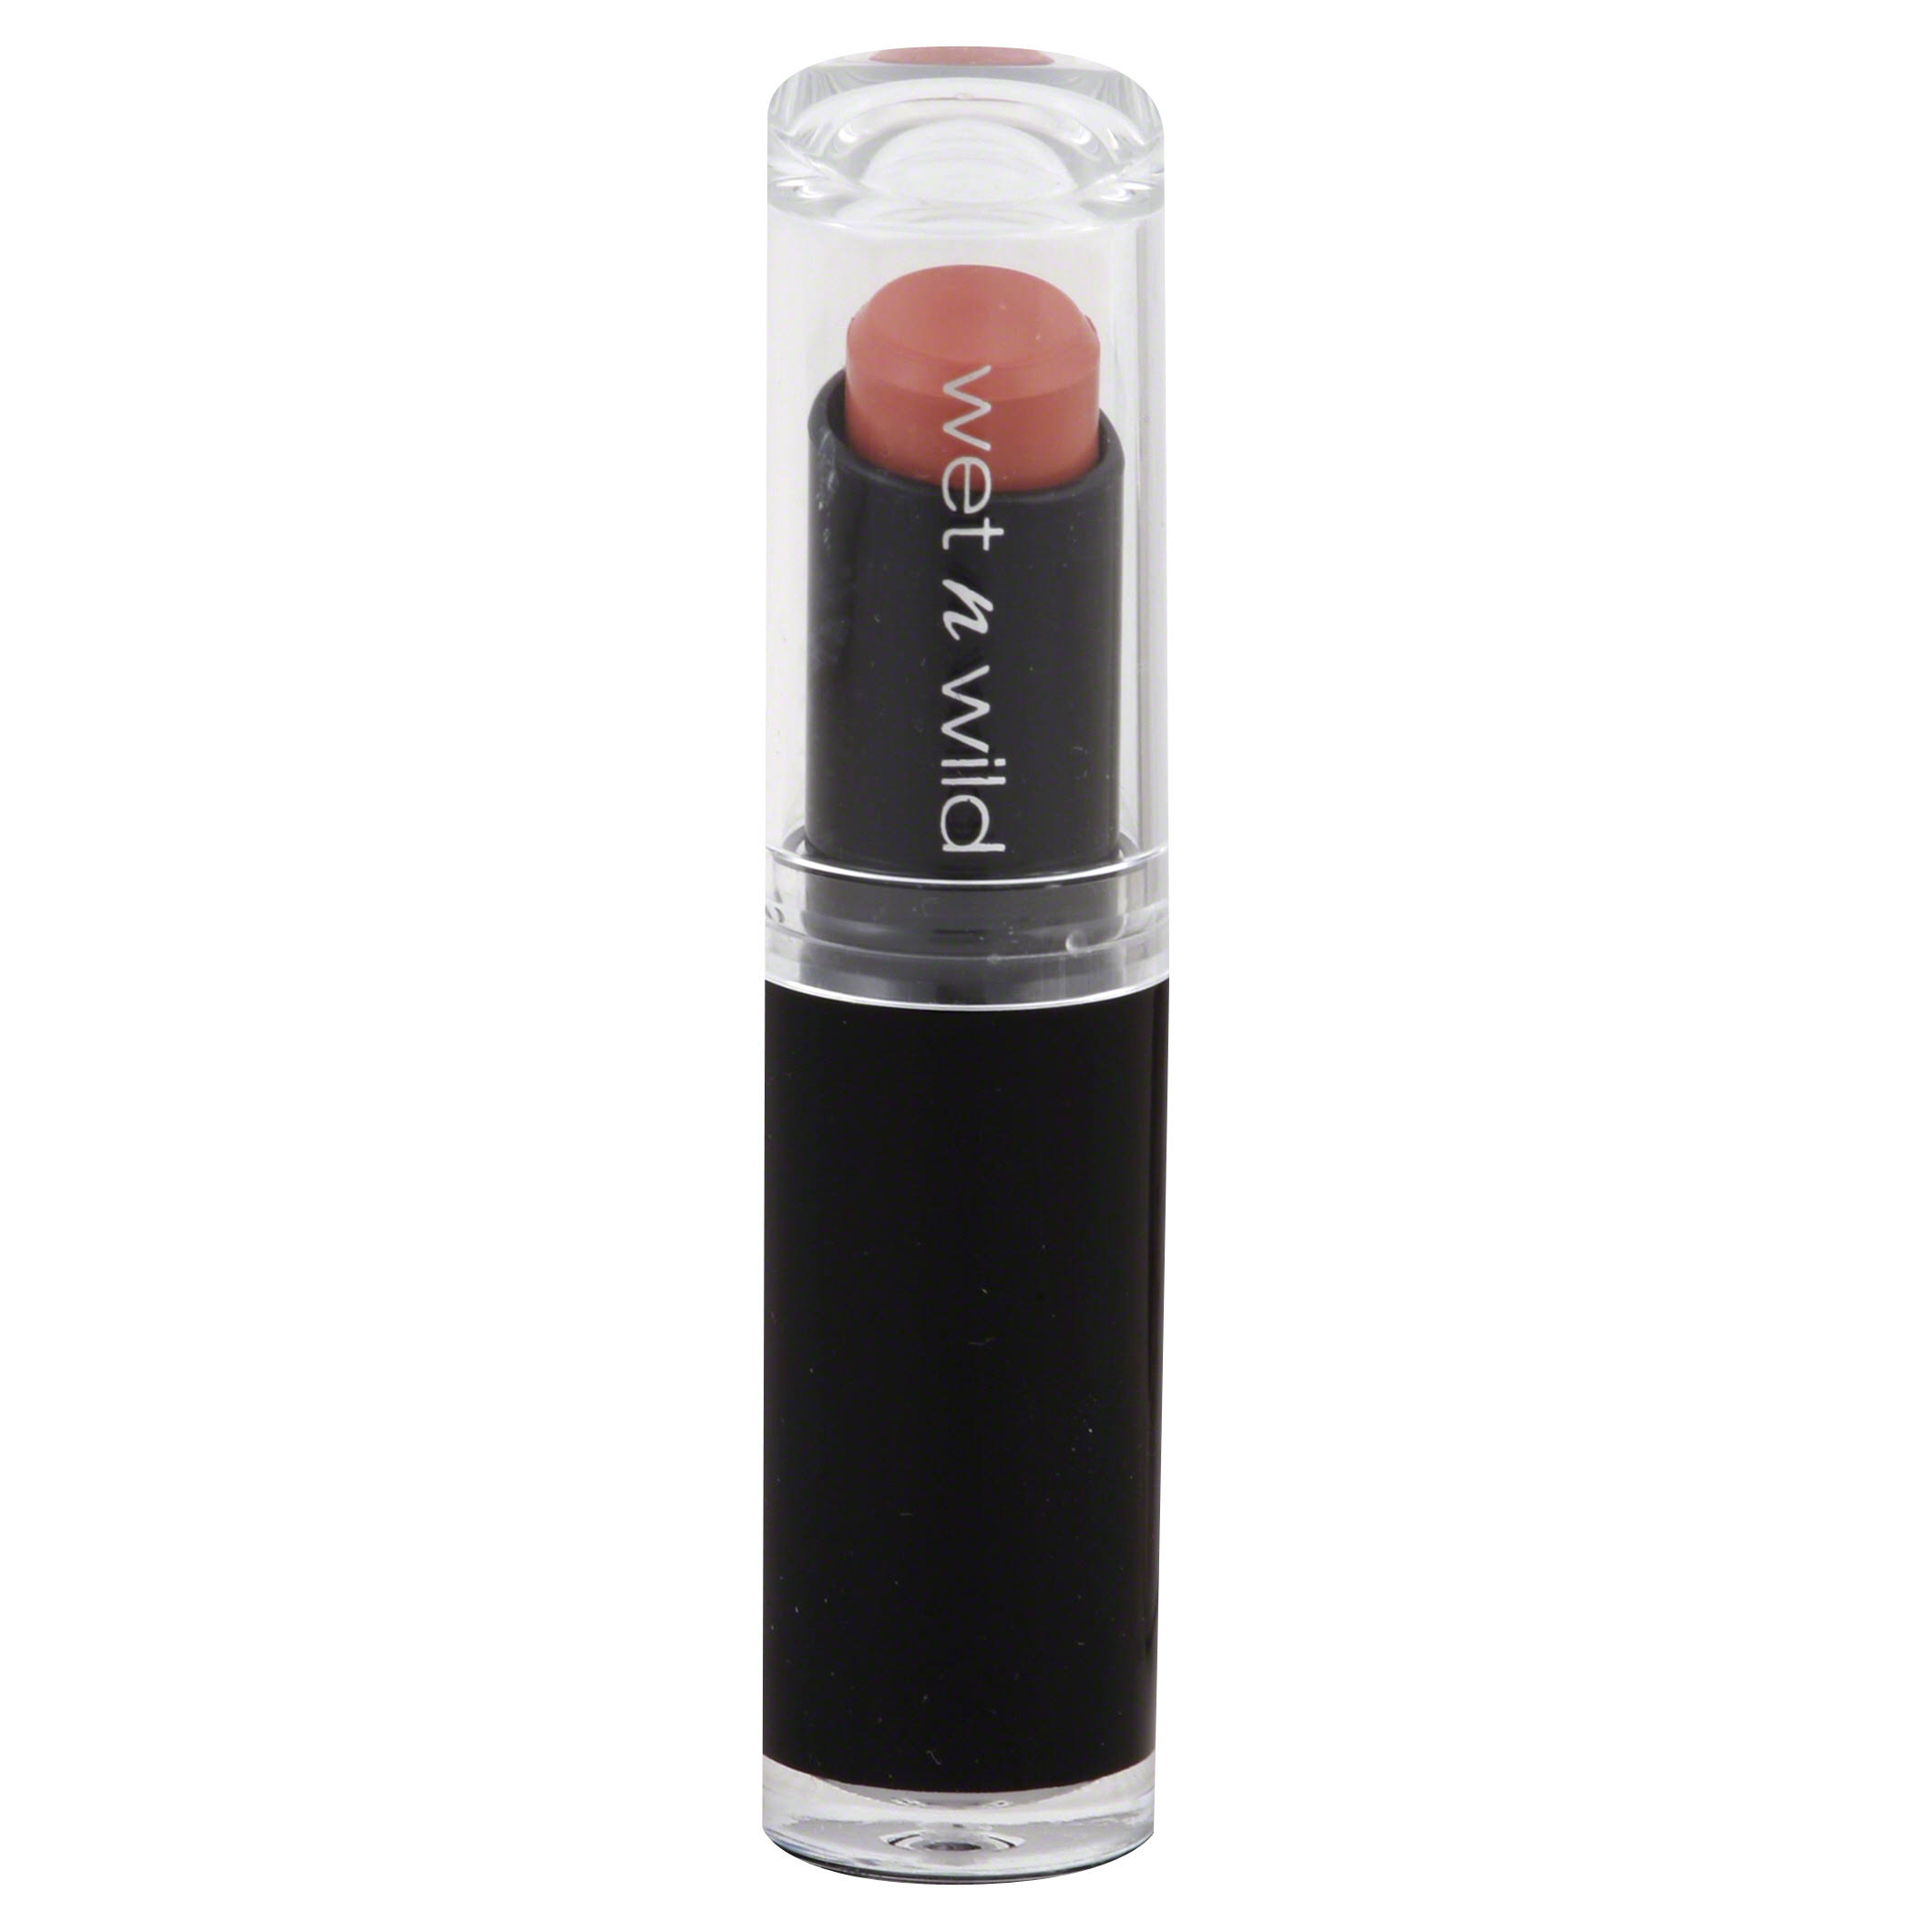 Wet N Wild Mega Last Lip Color Lipstick - 903c Just Peachy, 0.11oz